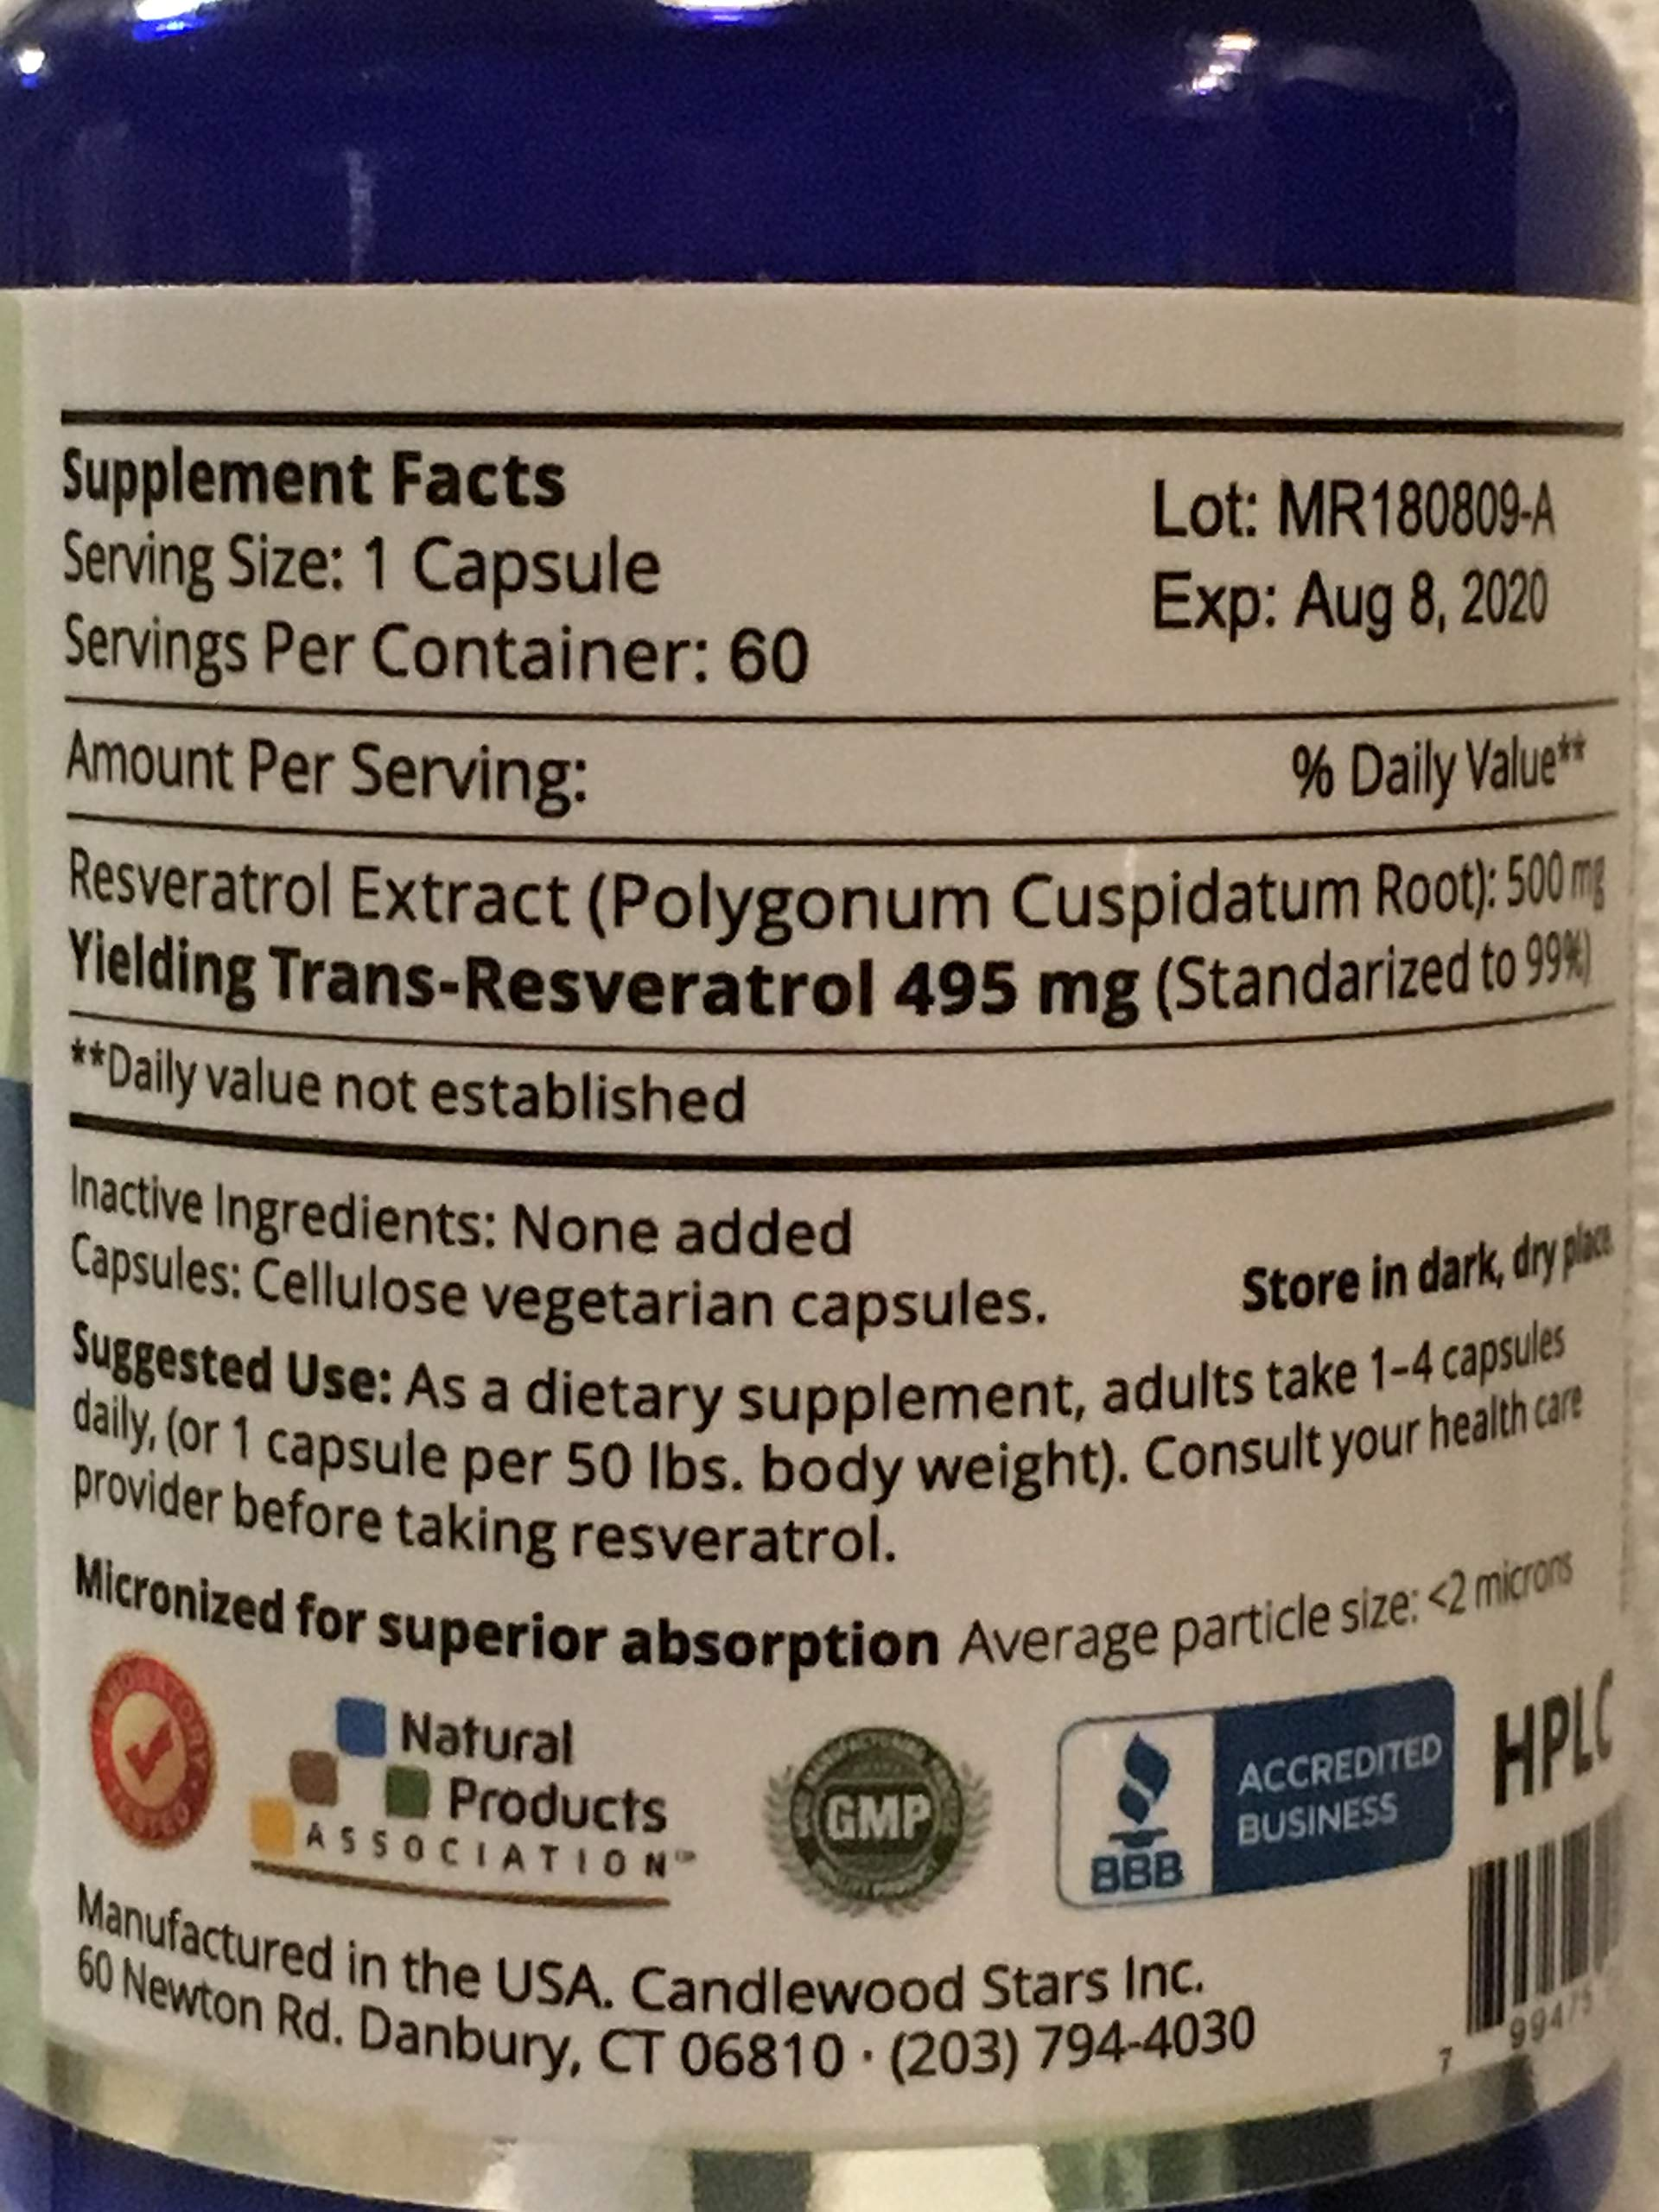 Mega Resveratrol, Pharmaceutical Grade, 99% Pure Micronized Trans-Resveratrol, 60 Vegetarian Capsules, 500 mg per Capsule. Purity Certified. Absolutely no excipients (aka Inactive Ingredients) Added